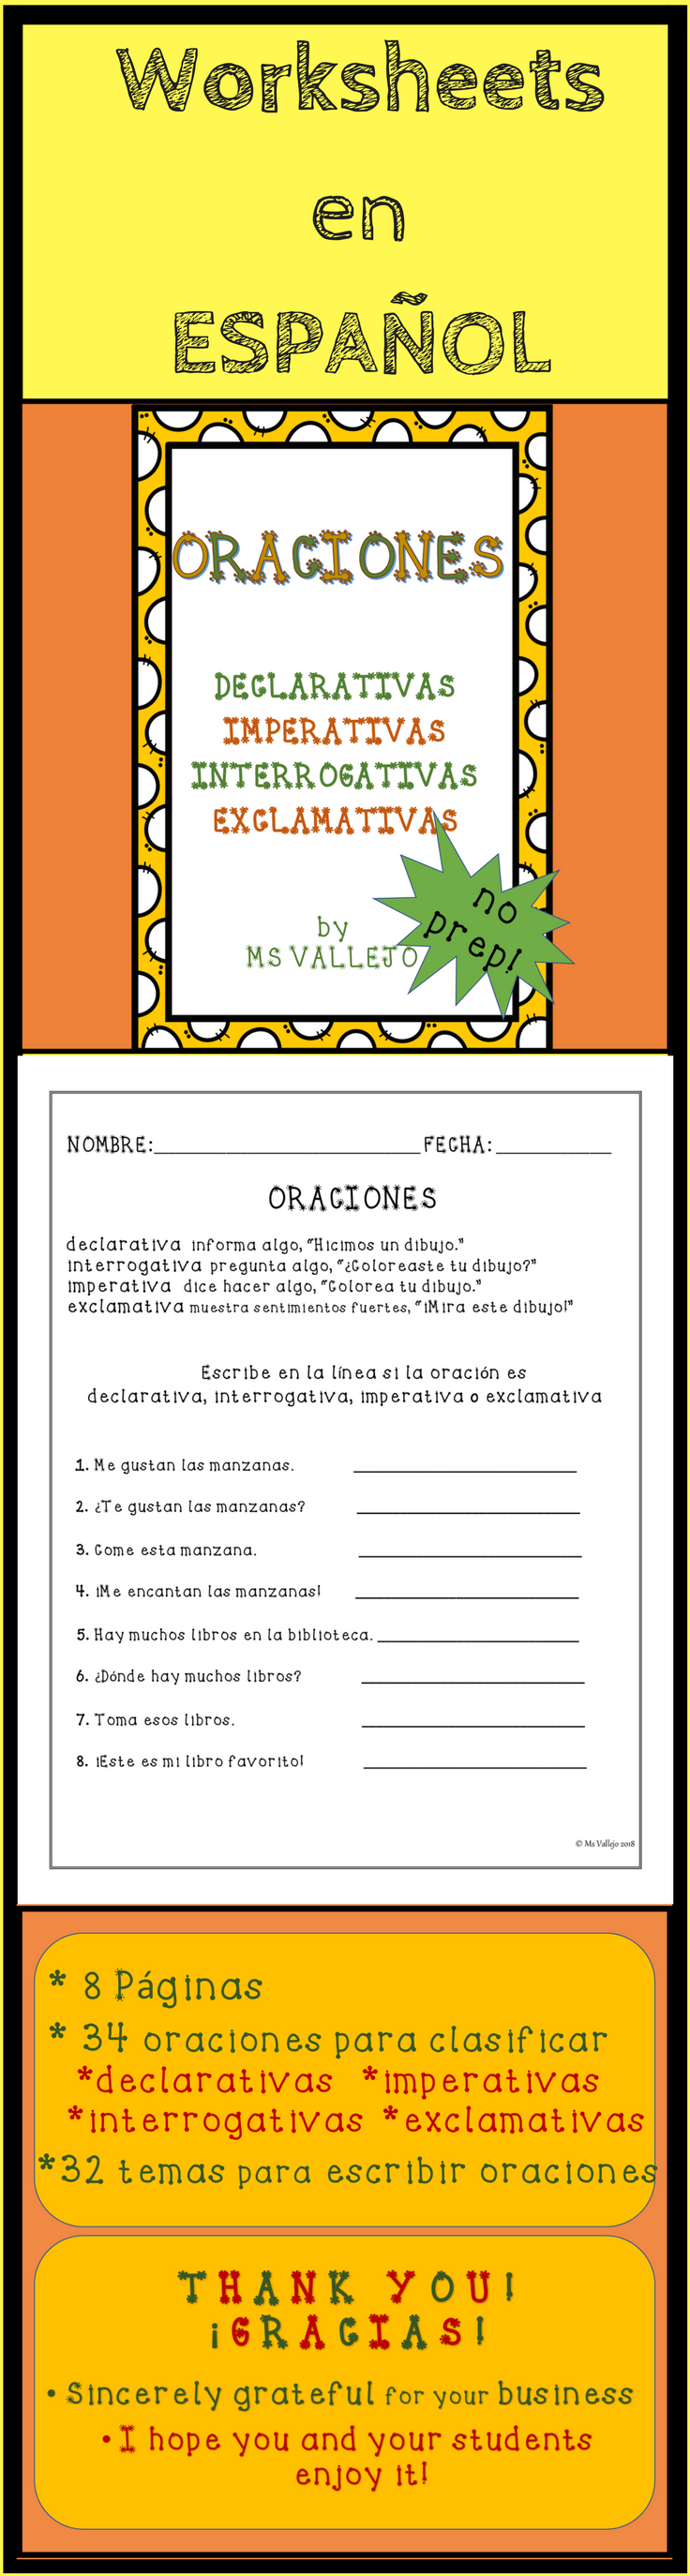 worksheet Declarative Imperative Interrogative Exclamatory Worksheets oraciones declarativas interrogativas imperativas y these worksheets in spanish are ready to go it will help your students at practicing